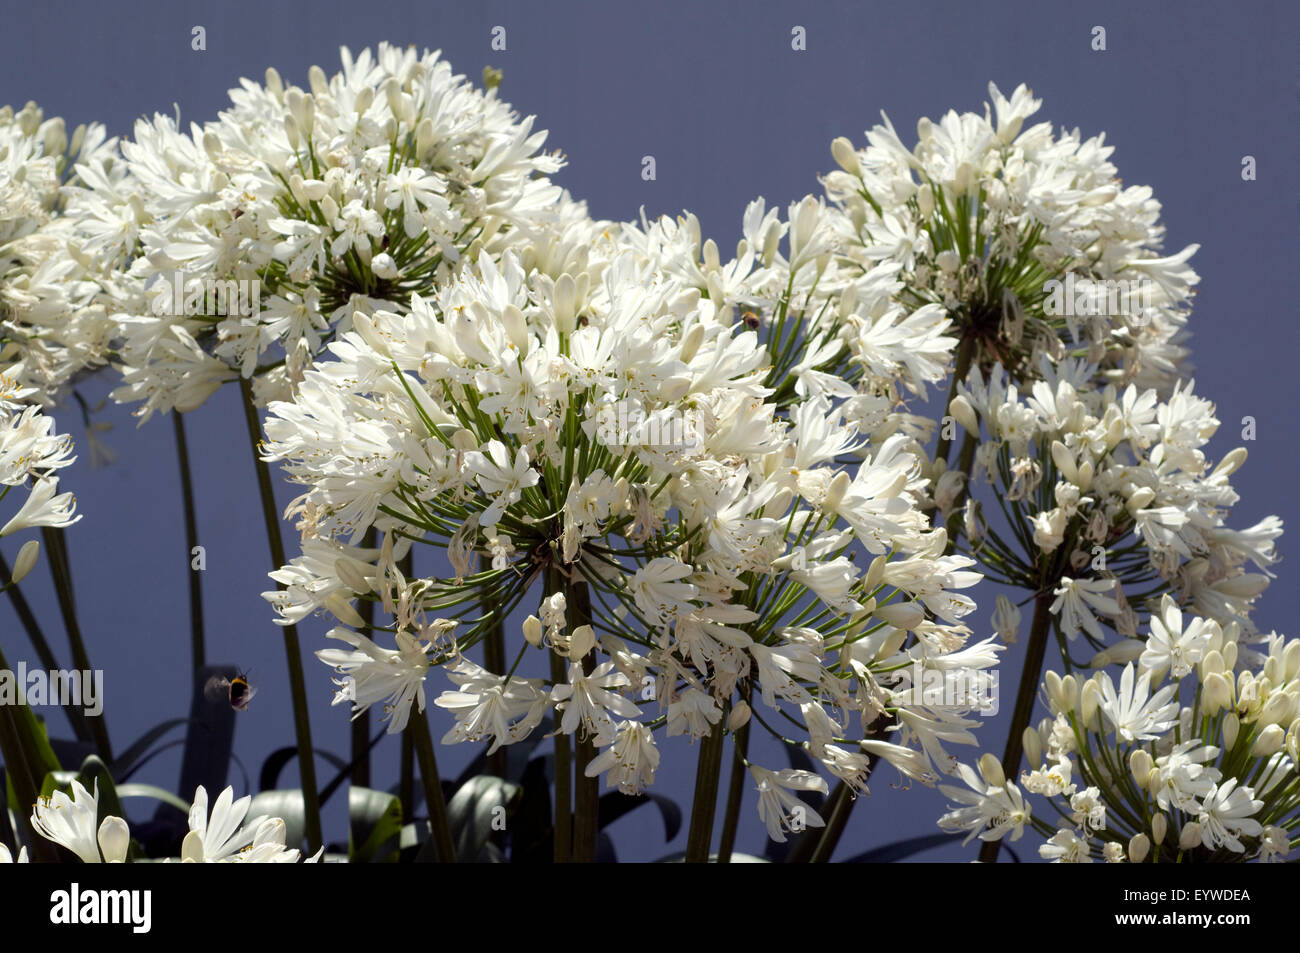 Schmucklilie, Agapanthus weiss - Stock Image